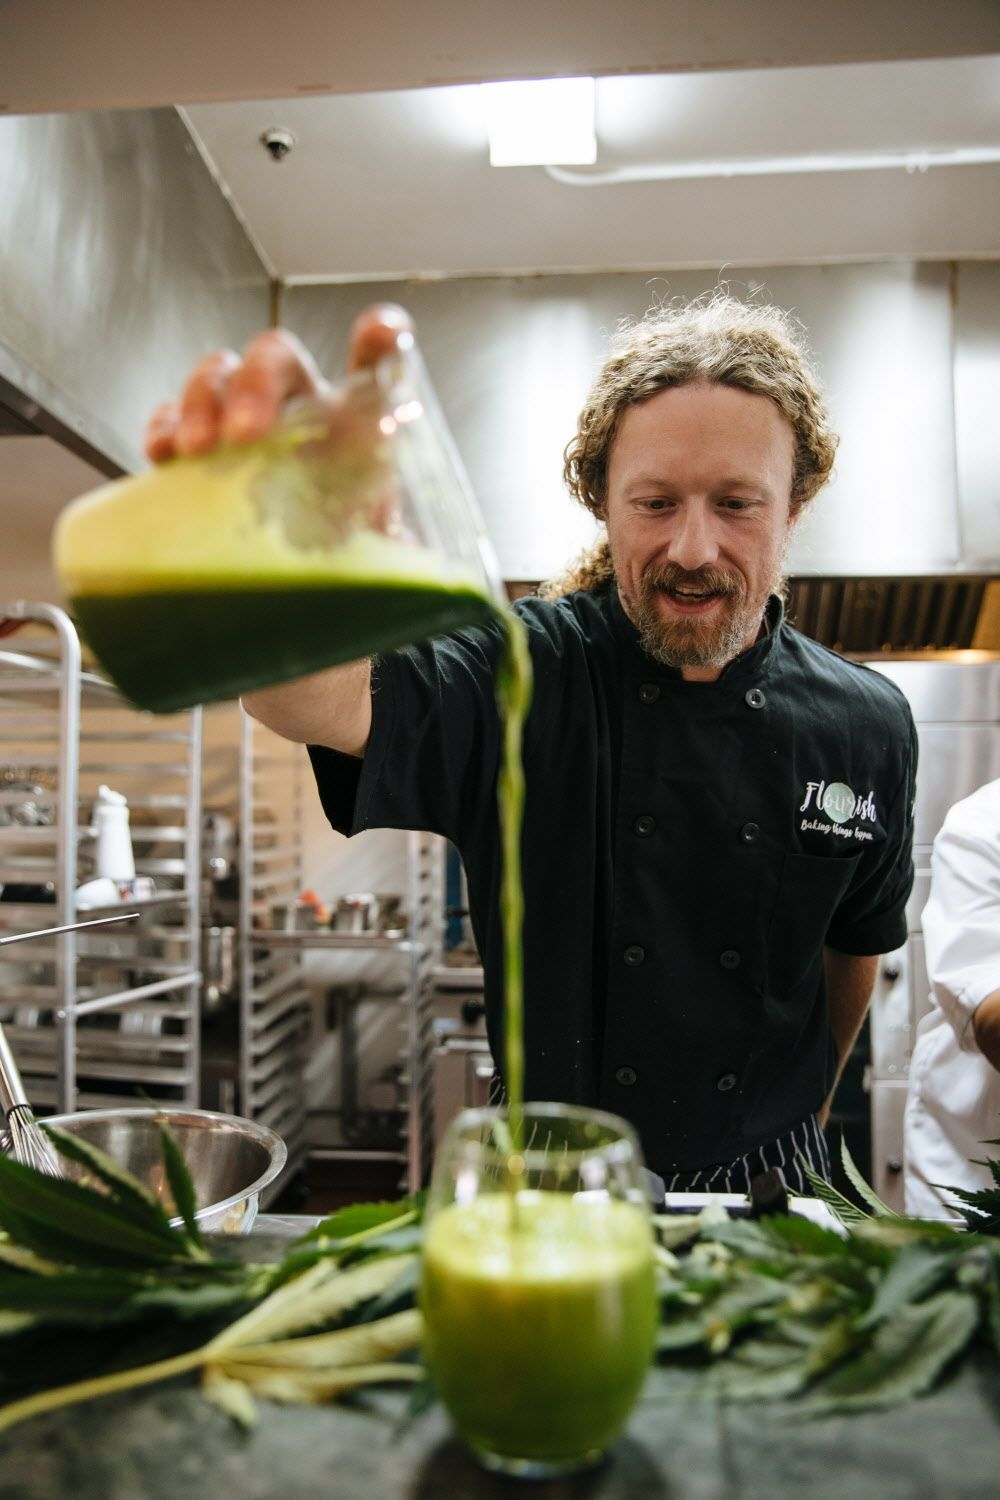 Payton Curry, Founder of Flourish Cannabis, pours freshly  juiced marijuana leaves at his kitchen in San Francisco, Calif. Tuesday, August 8, 2017.